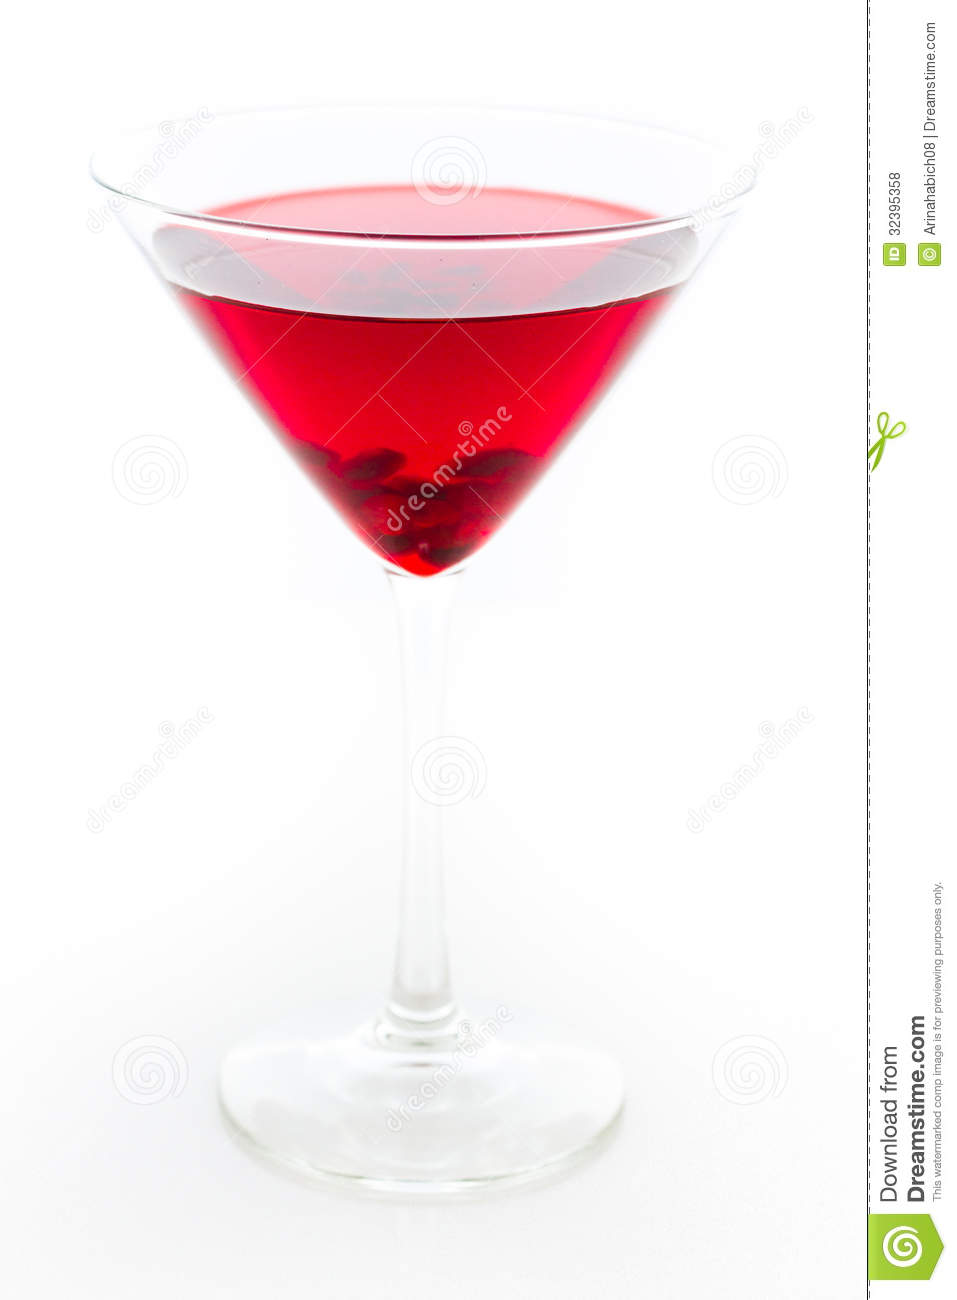 Pomegranate Cosmo Royalty Free Stock Photos - Image: 32395358